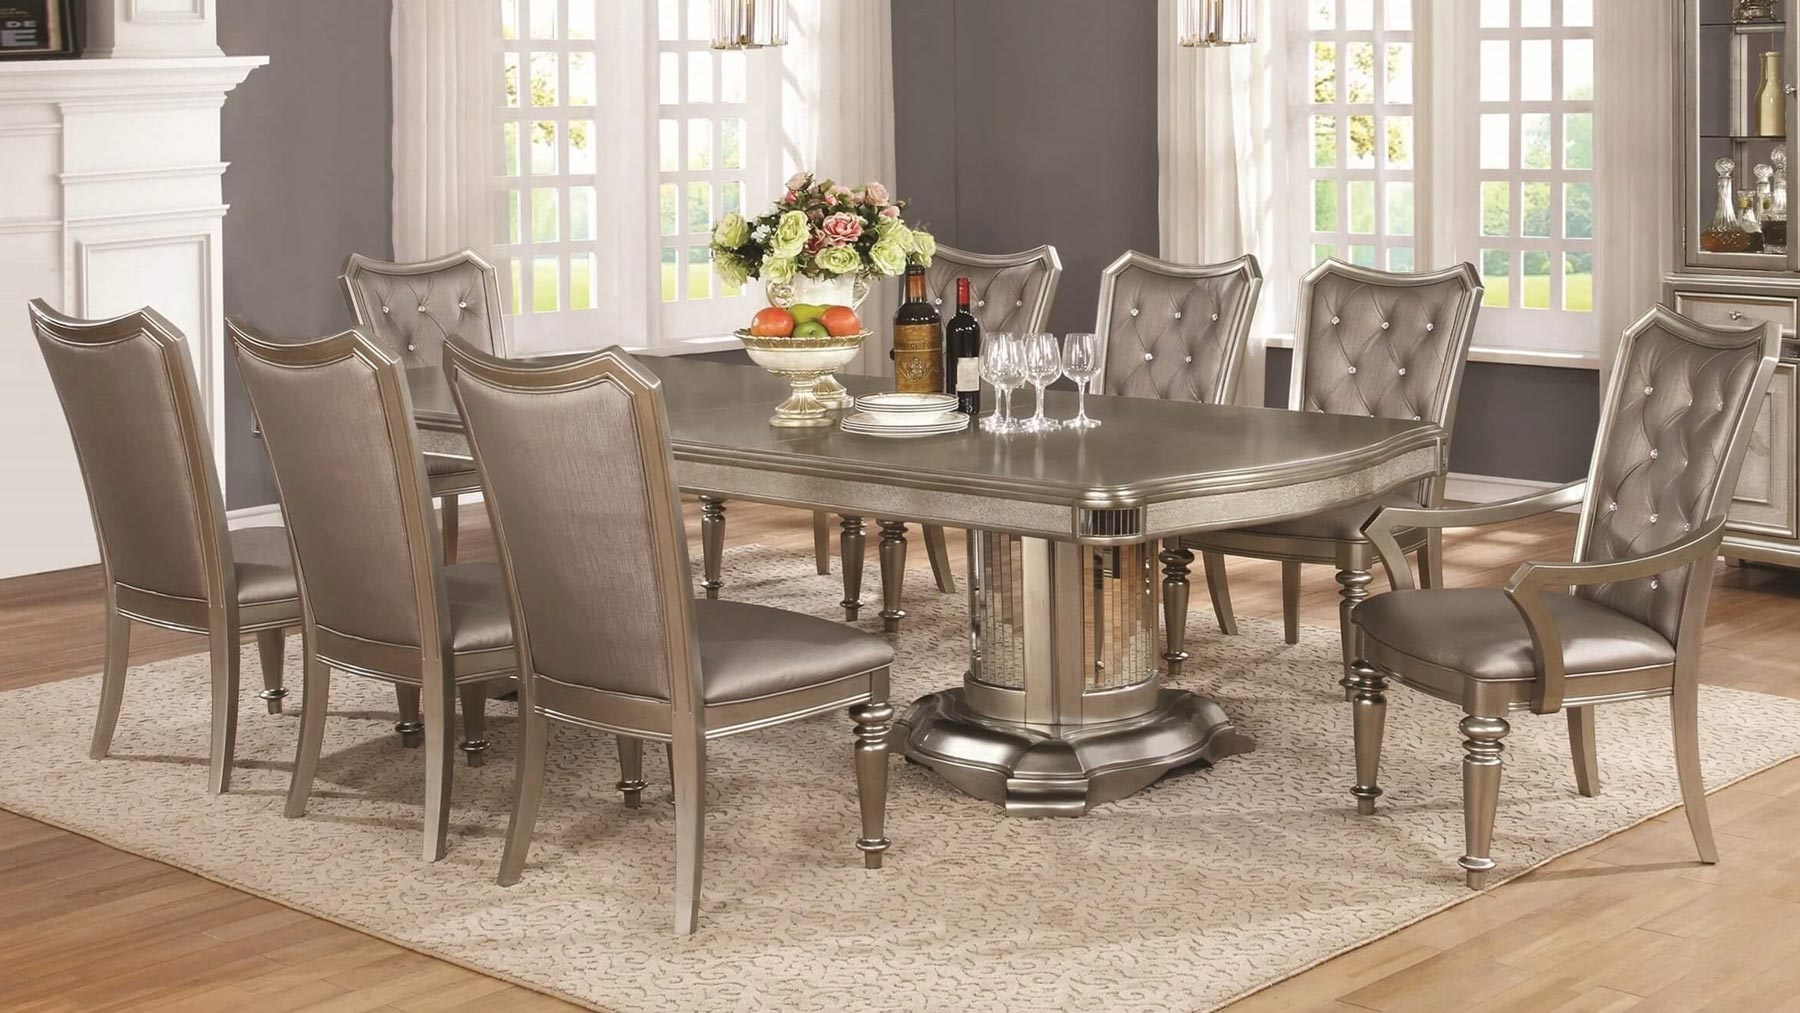 Charmant ... Clearance Dining Room Furniture